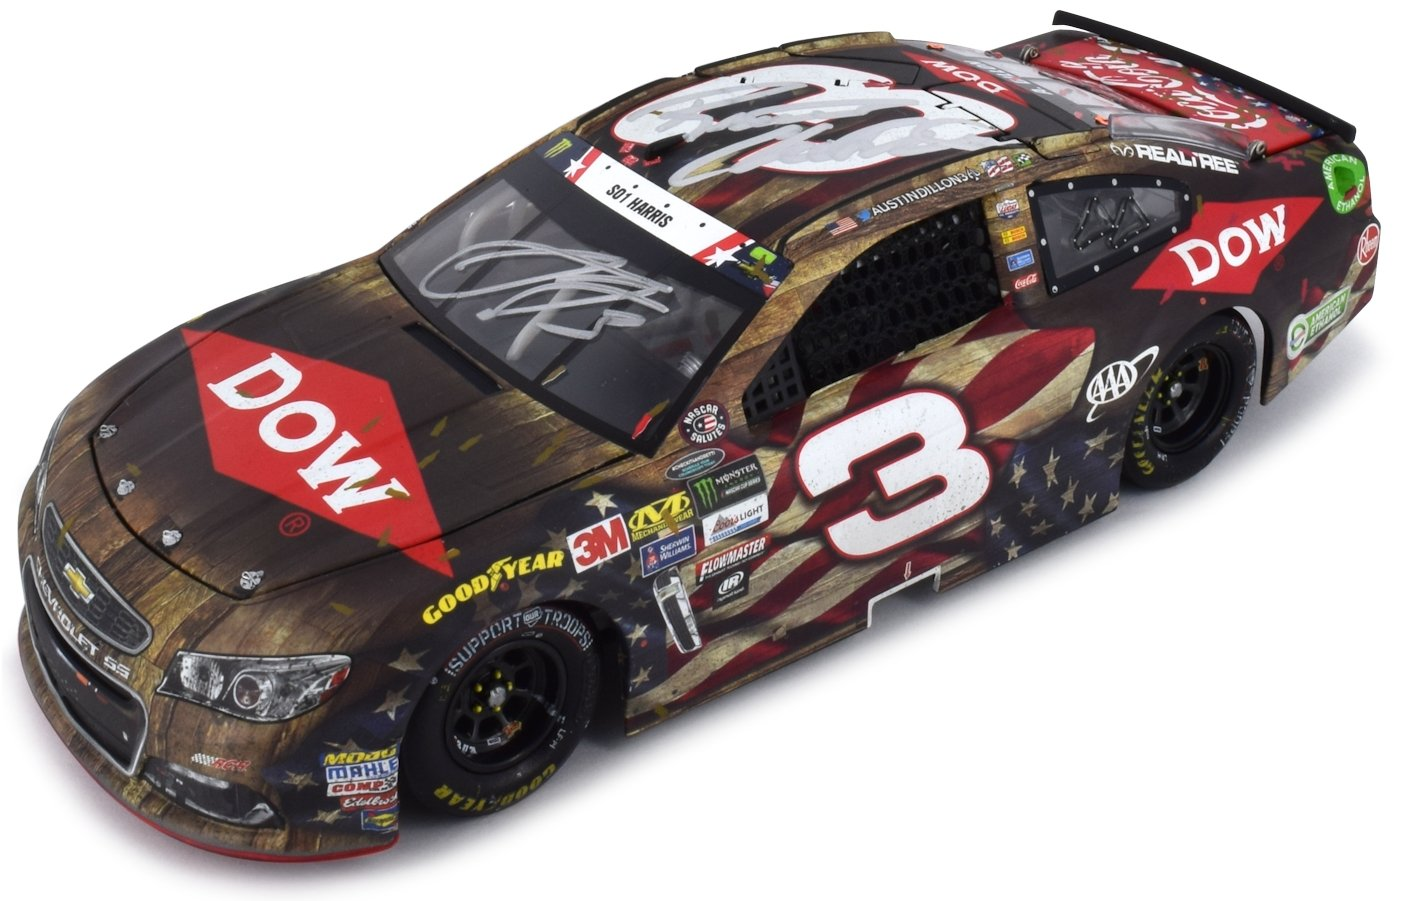 Lionel Racing Dual Autographed Austin Dillon/Richard Childress 2017 Coca Cola 600 First Cup Series Win Raced Version NASCAR Diecast 1:24 Scale